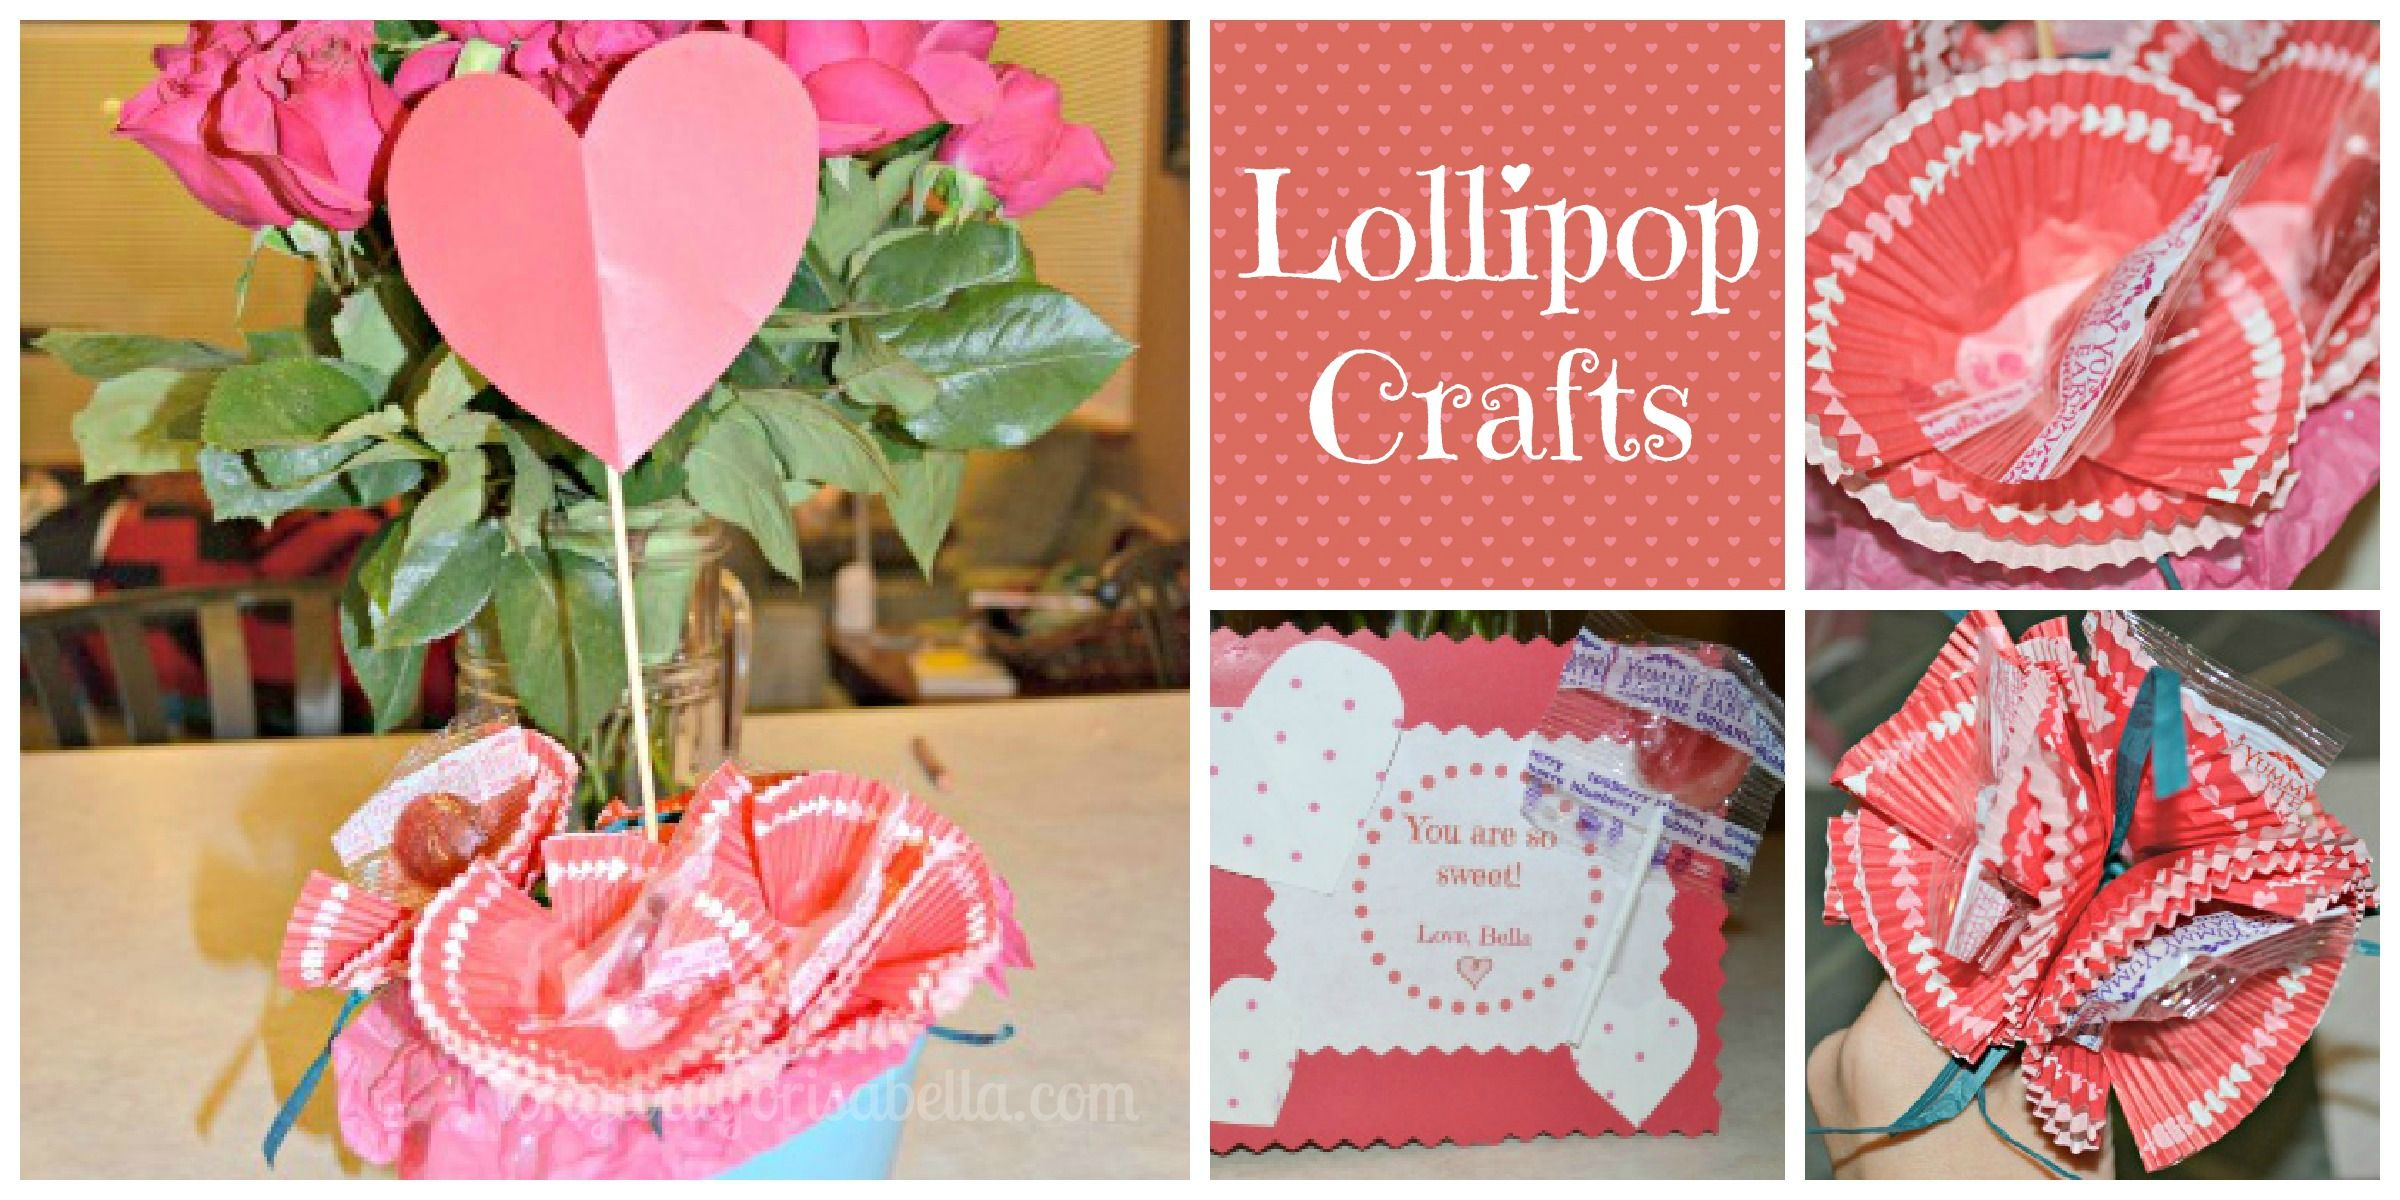 Lollipop Crafts With Yumearth Organic Crafts